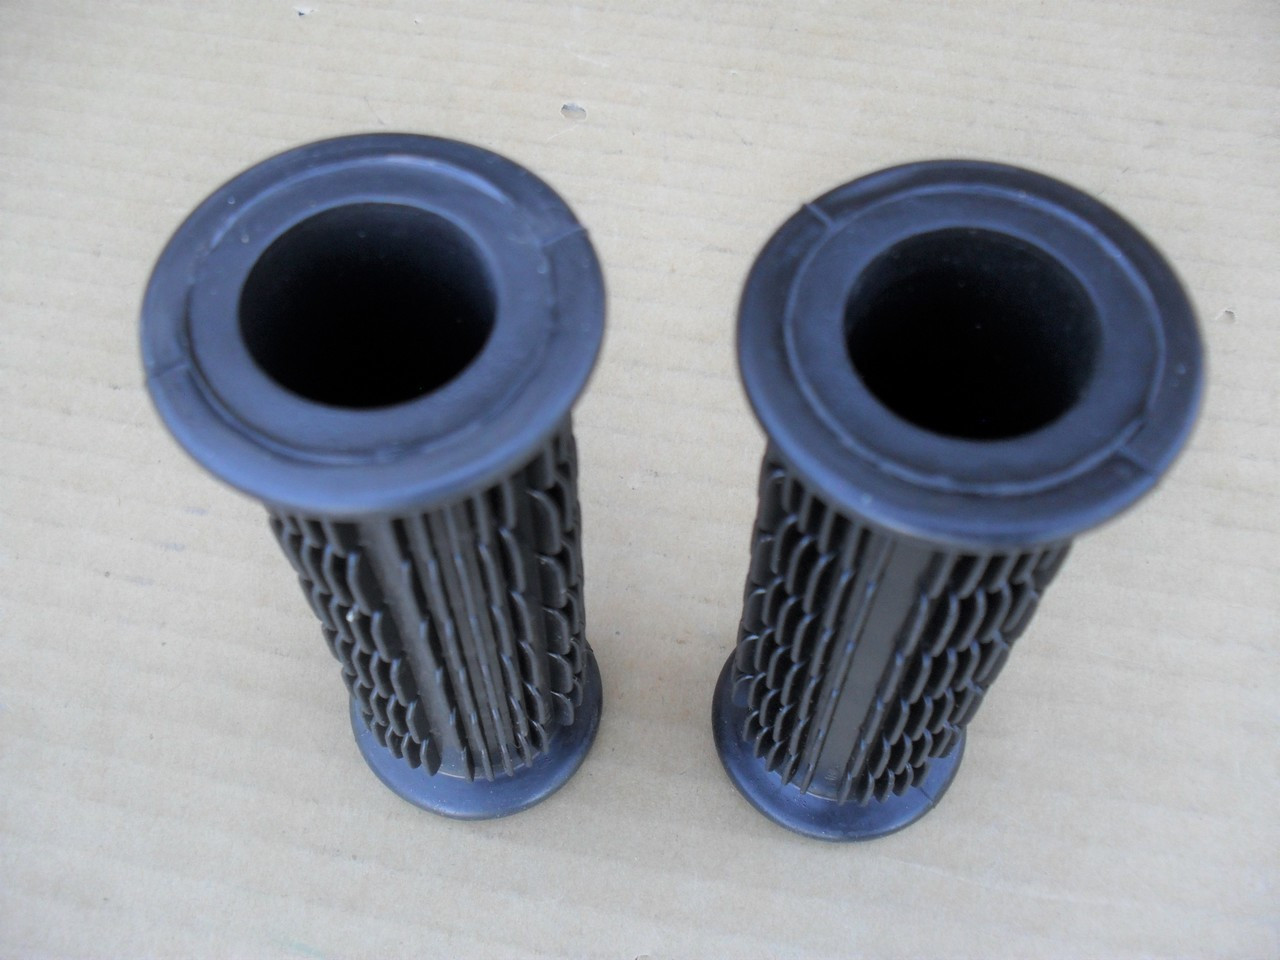 """Handle Bar Grips 7/8"""" Deluxe for Scag, Snapper, Mclane, Bobcat, Sensation 12031, 7012031, 7012031YP, 1-2031, Made In USA"""